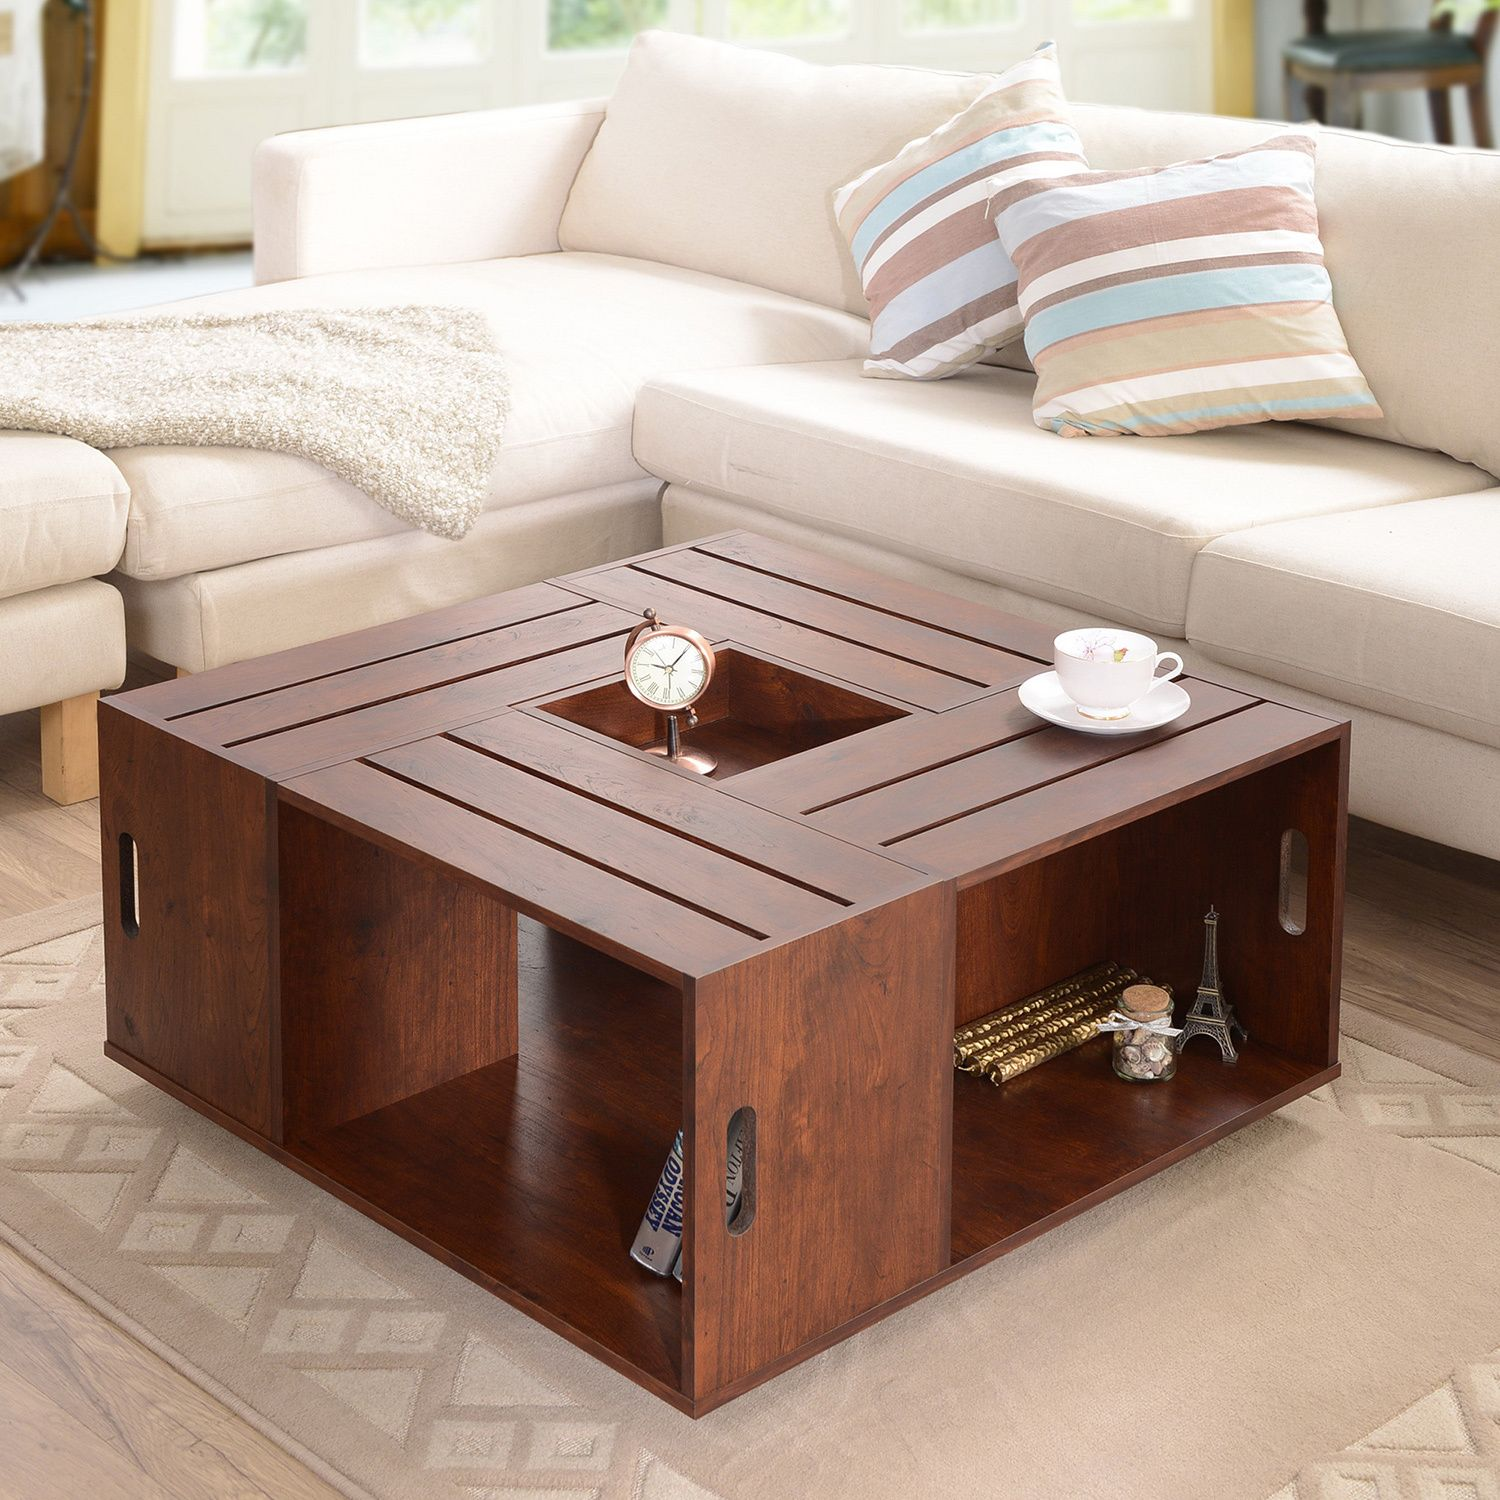 Add Artisan Inspired Style To Your Living Room Decor With This Wine Crate Coffee Table